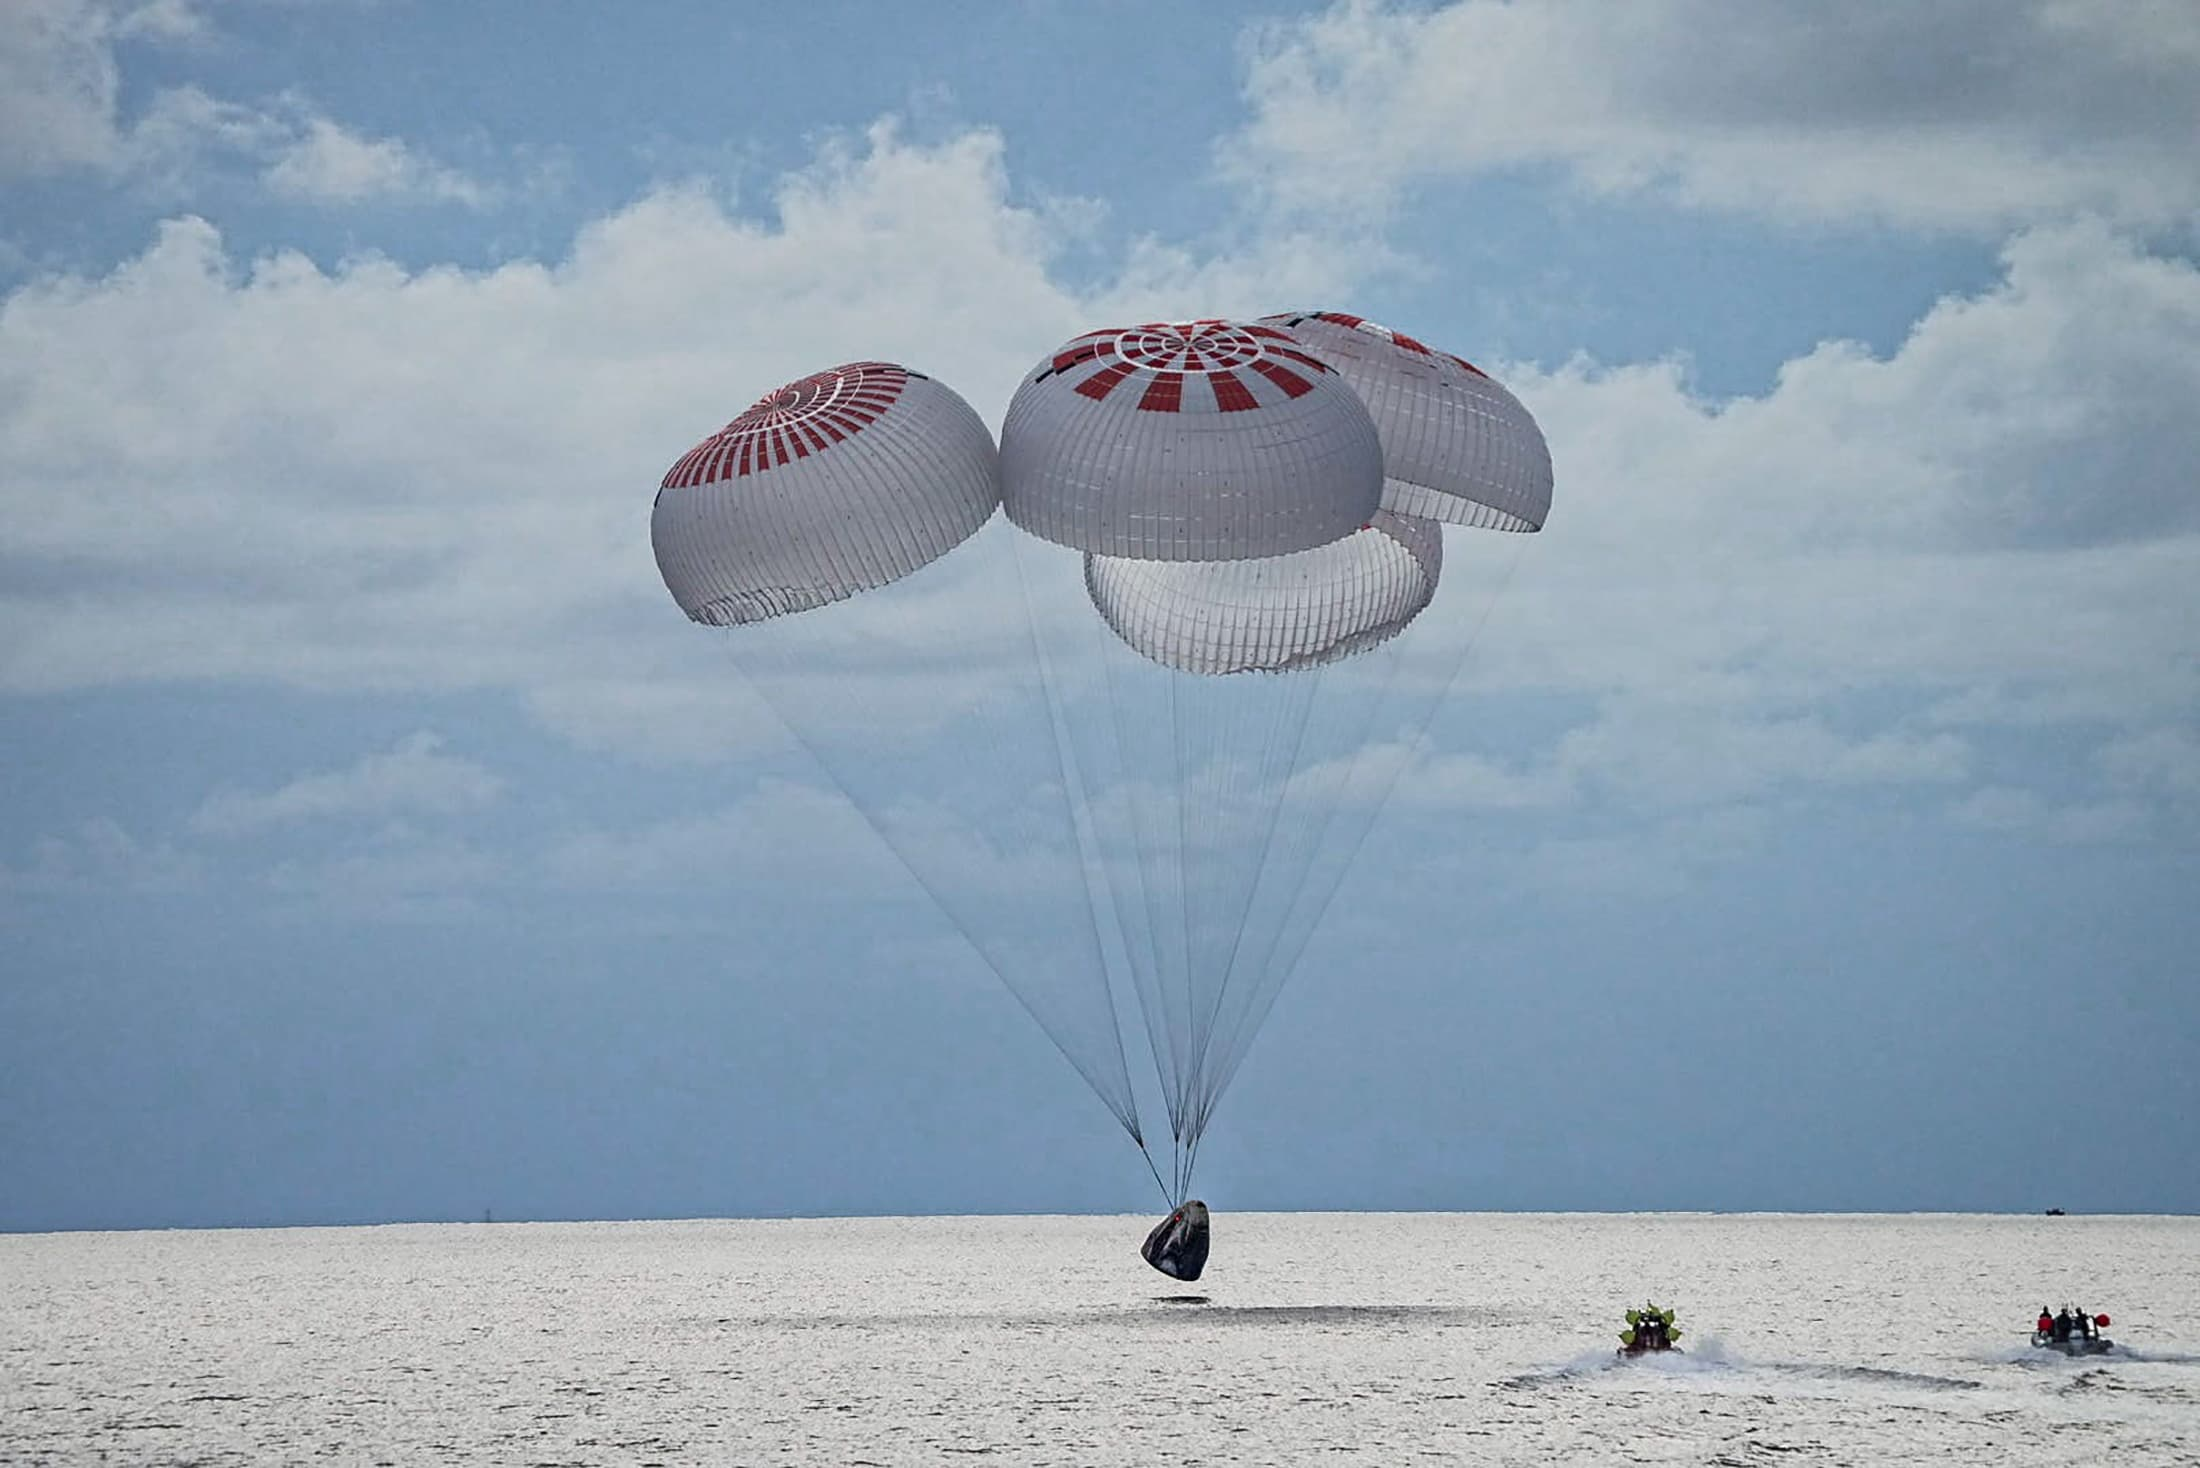 SpaceX supplied the spacecraft, launched it, controlled its flight and handled the splashdown recovery operation. Reuters